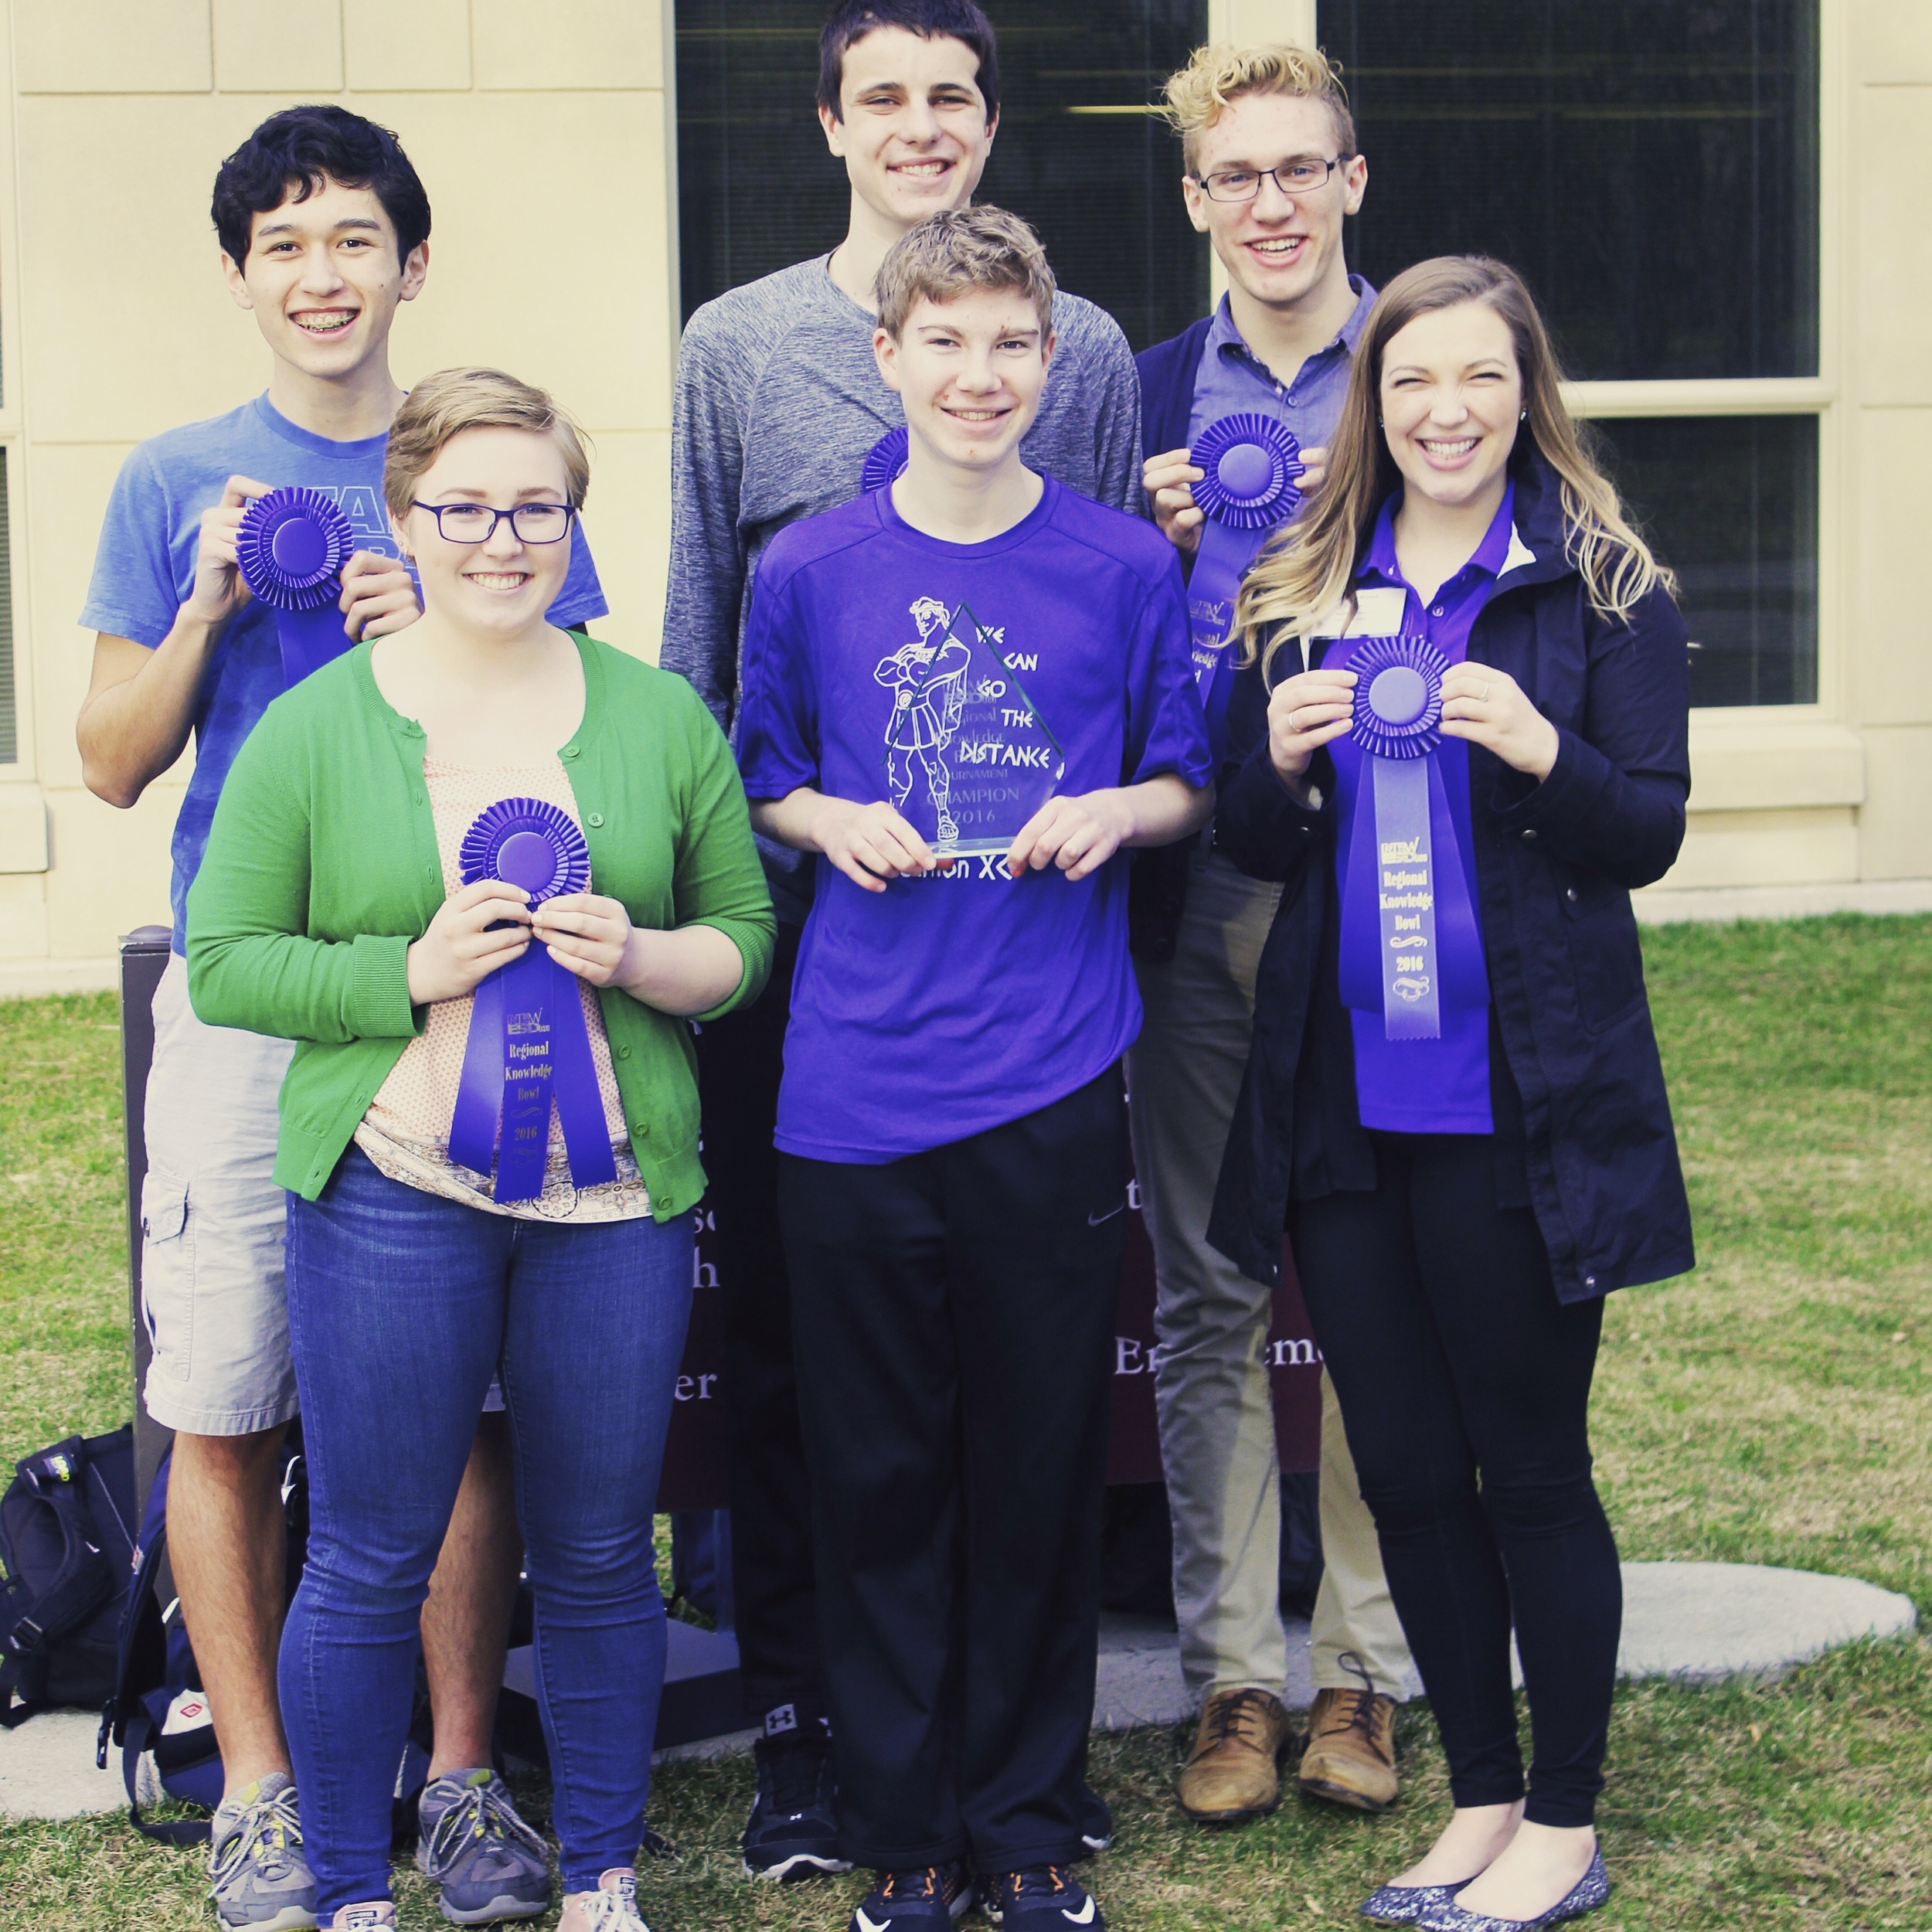 The 2016 PHS Varsity Knowledge Bowl Team after winning the NEWESD Regional Tournament!  Pictured (Left to Right) Front: Daisy Ward, Declan Edgecombe, Coach Brown Back: Jerome Campbell, Ryan McCluskey, Matt Larson